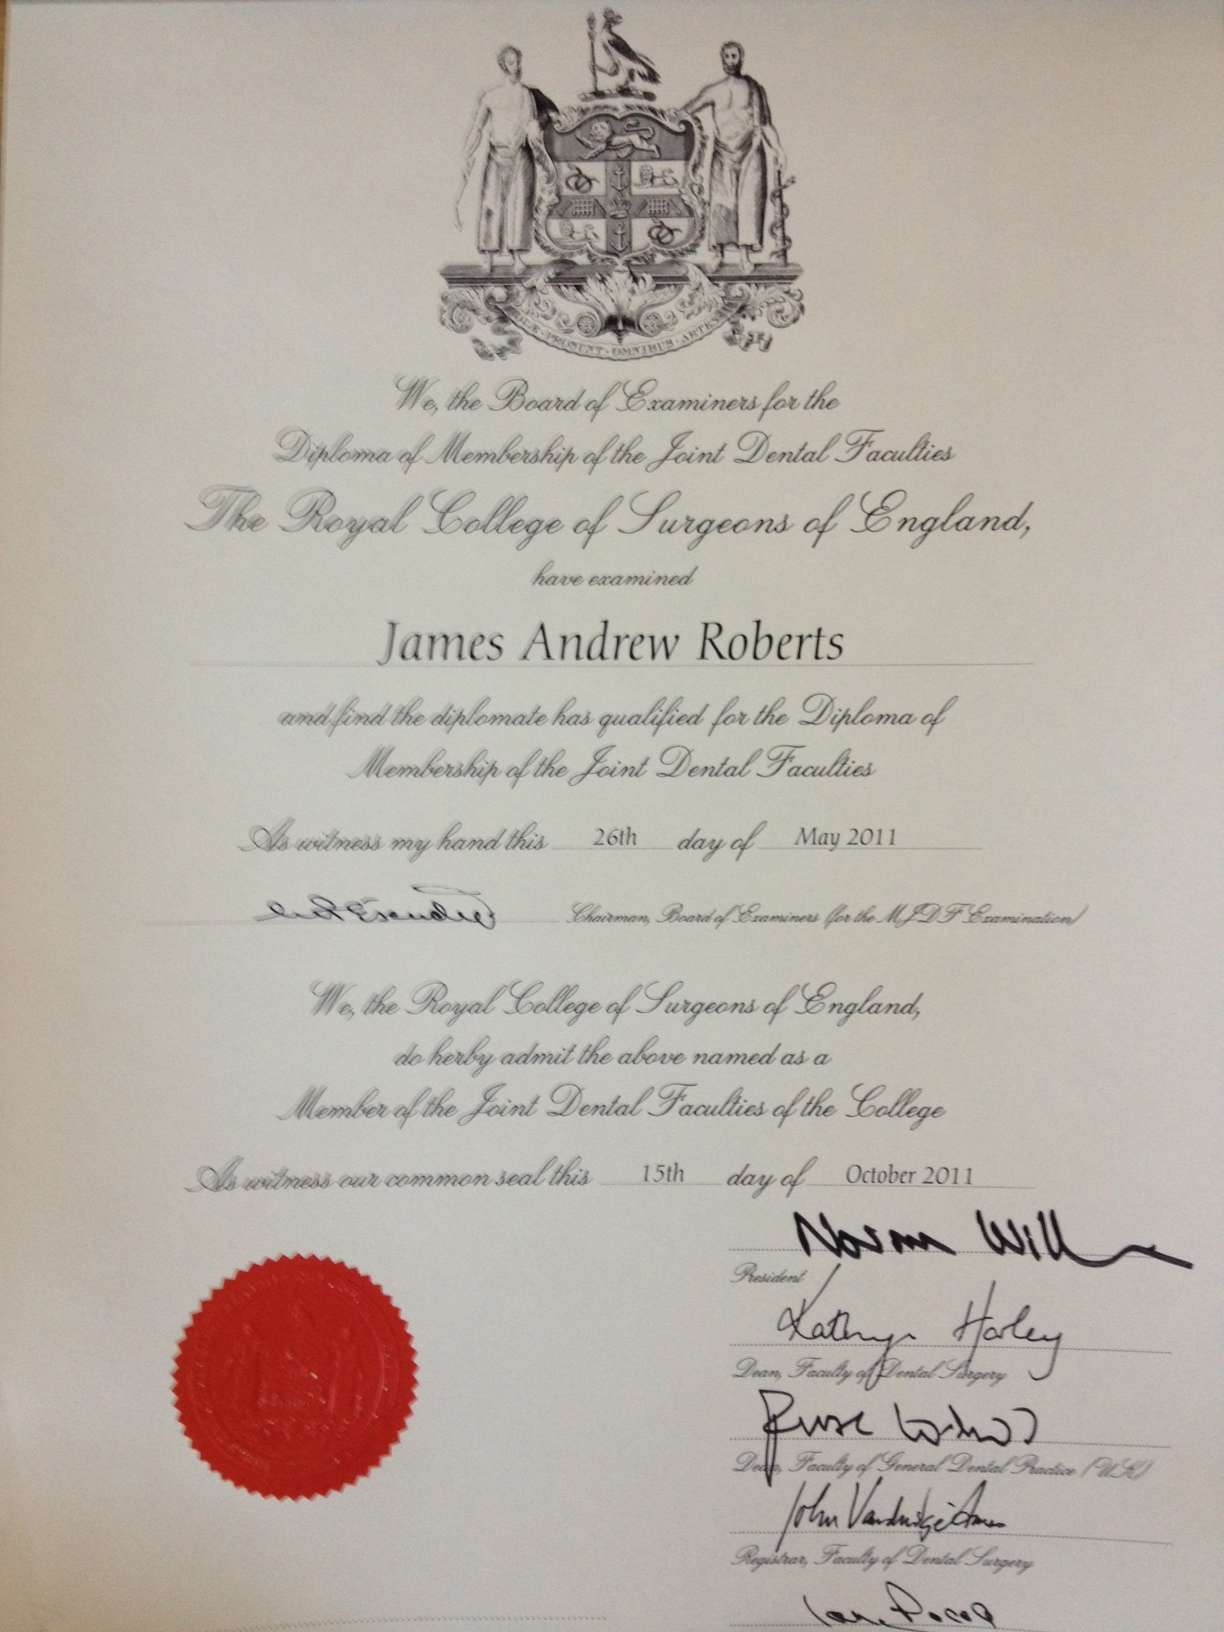 May 2011 – Received the Diploma of Membership of the Joint Dental Faculties from the Royal College of Surgeons of England